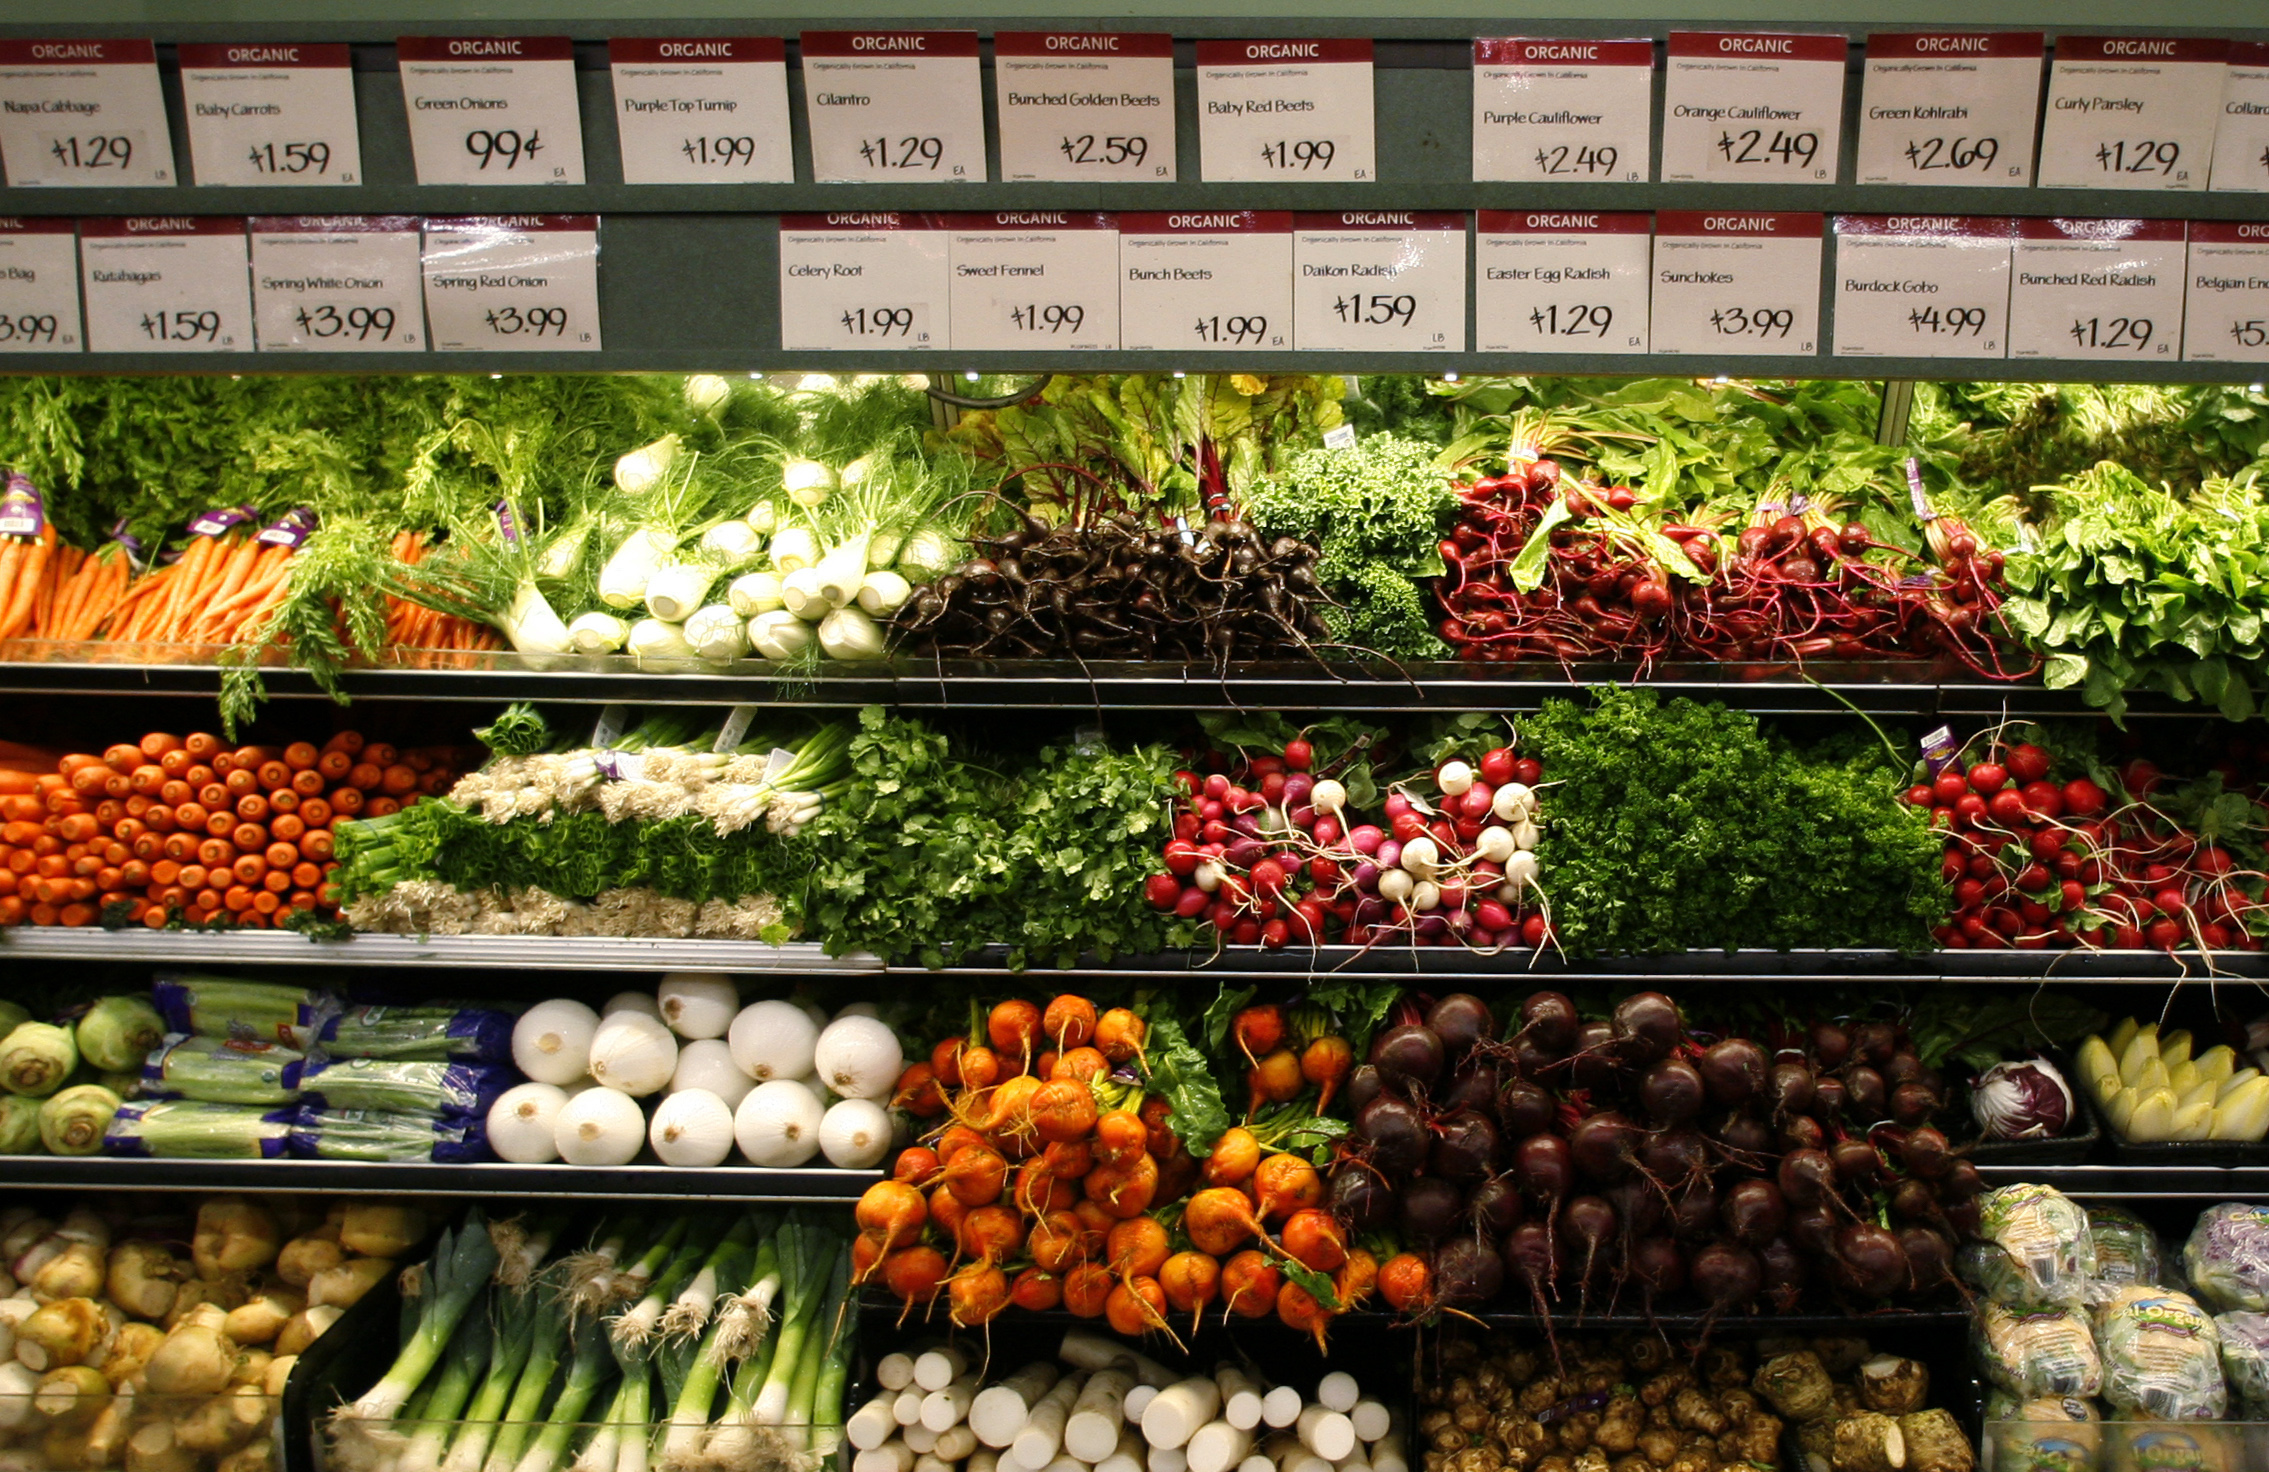 How the produce aisle looks to a migrant farmworker ...